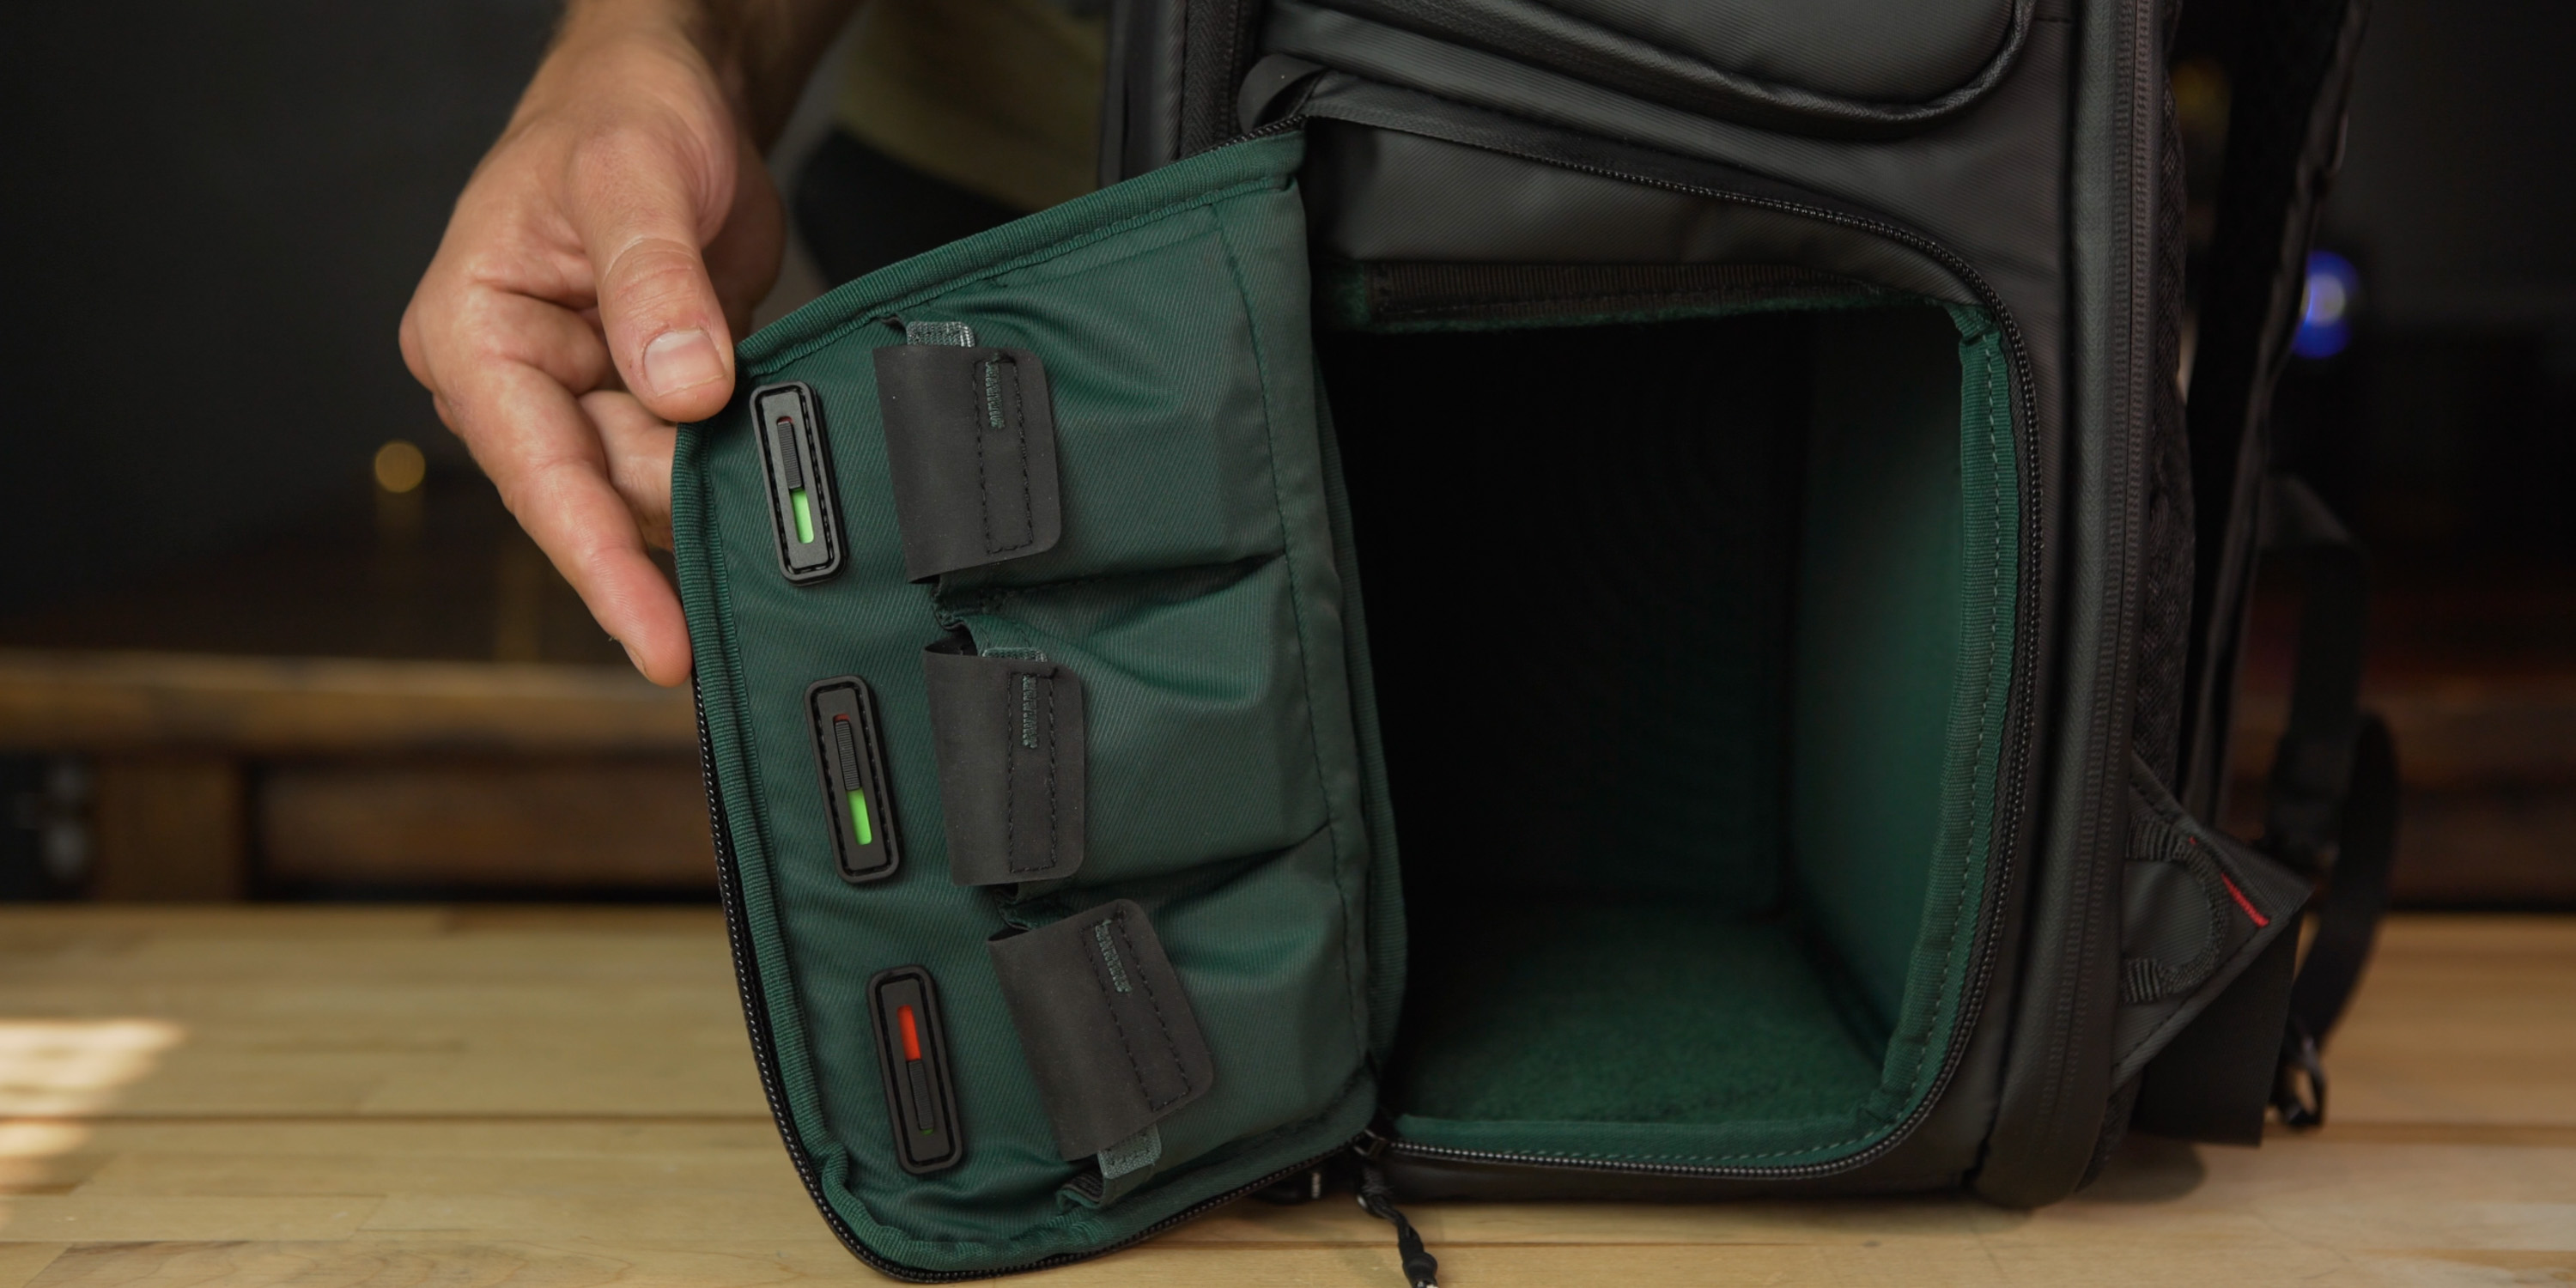 Dedicated battery pouches with charge indicators on the OneMo camera bag